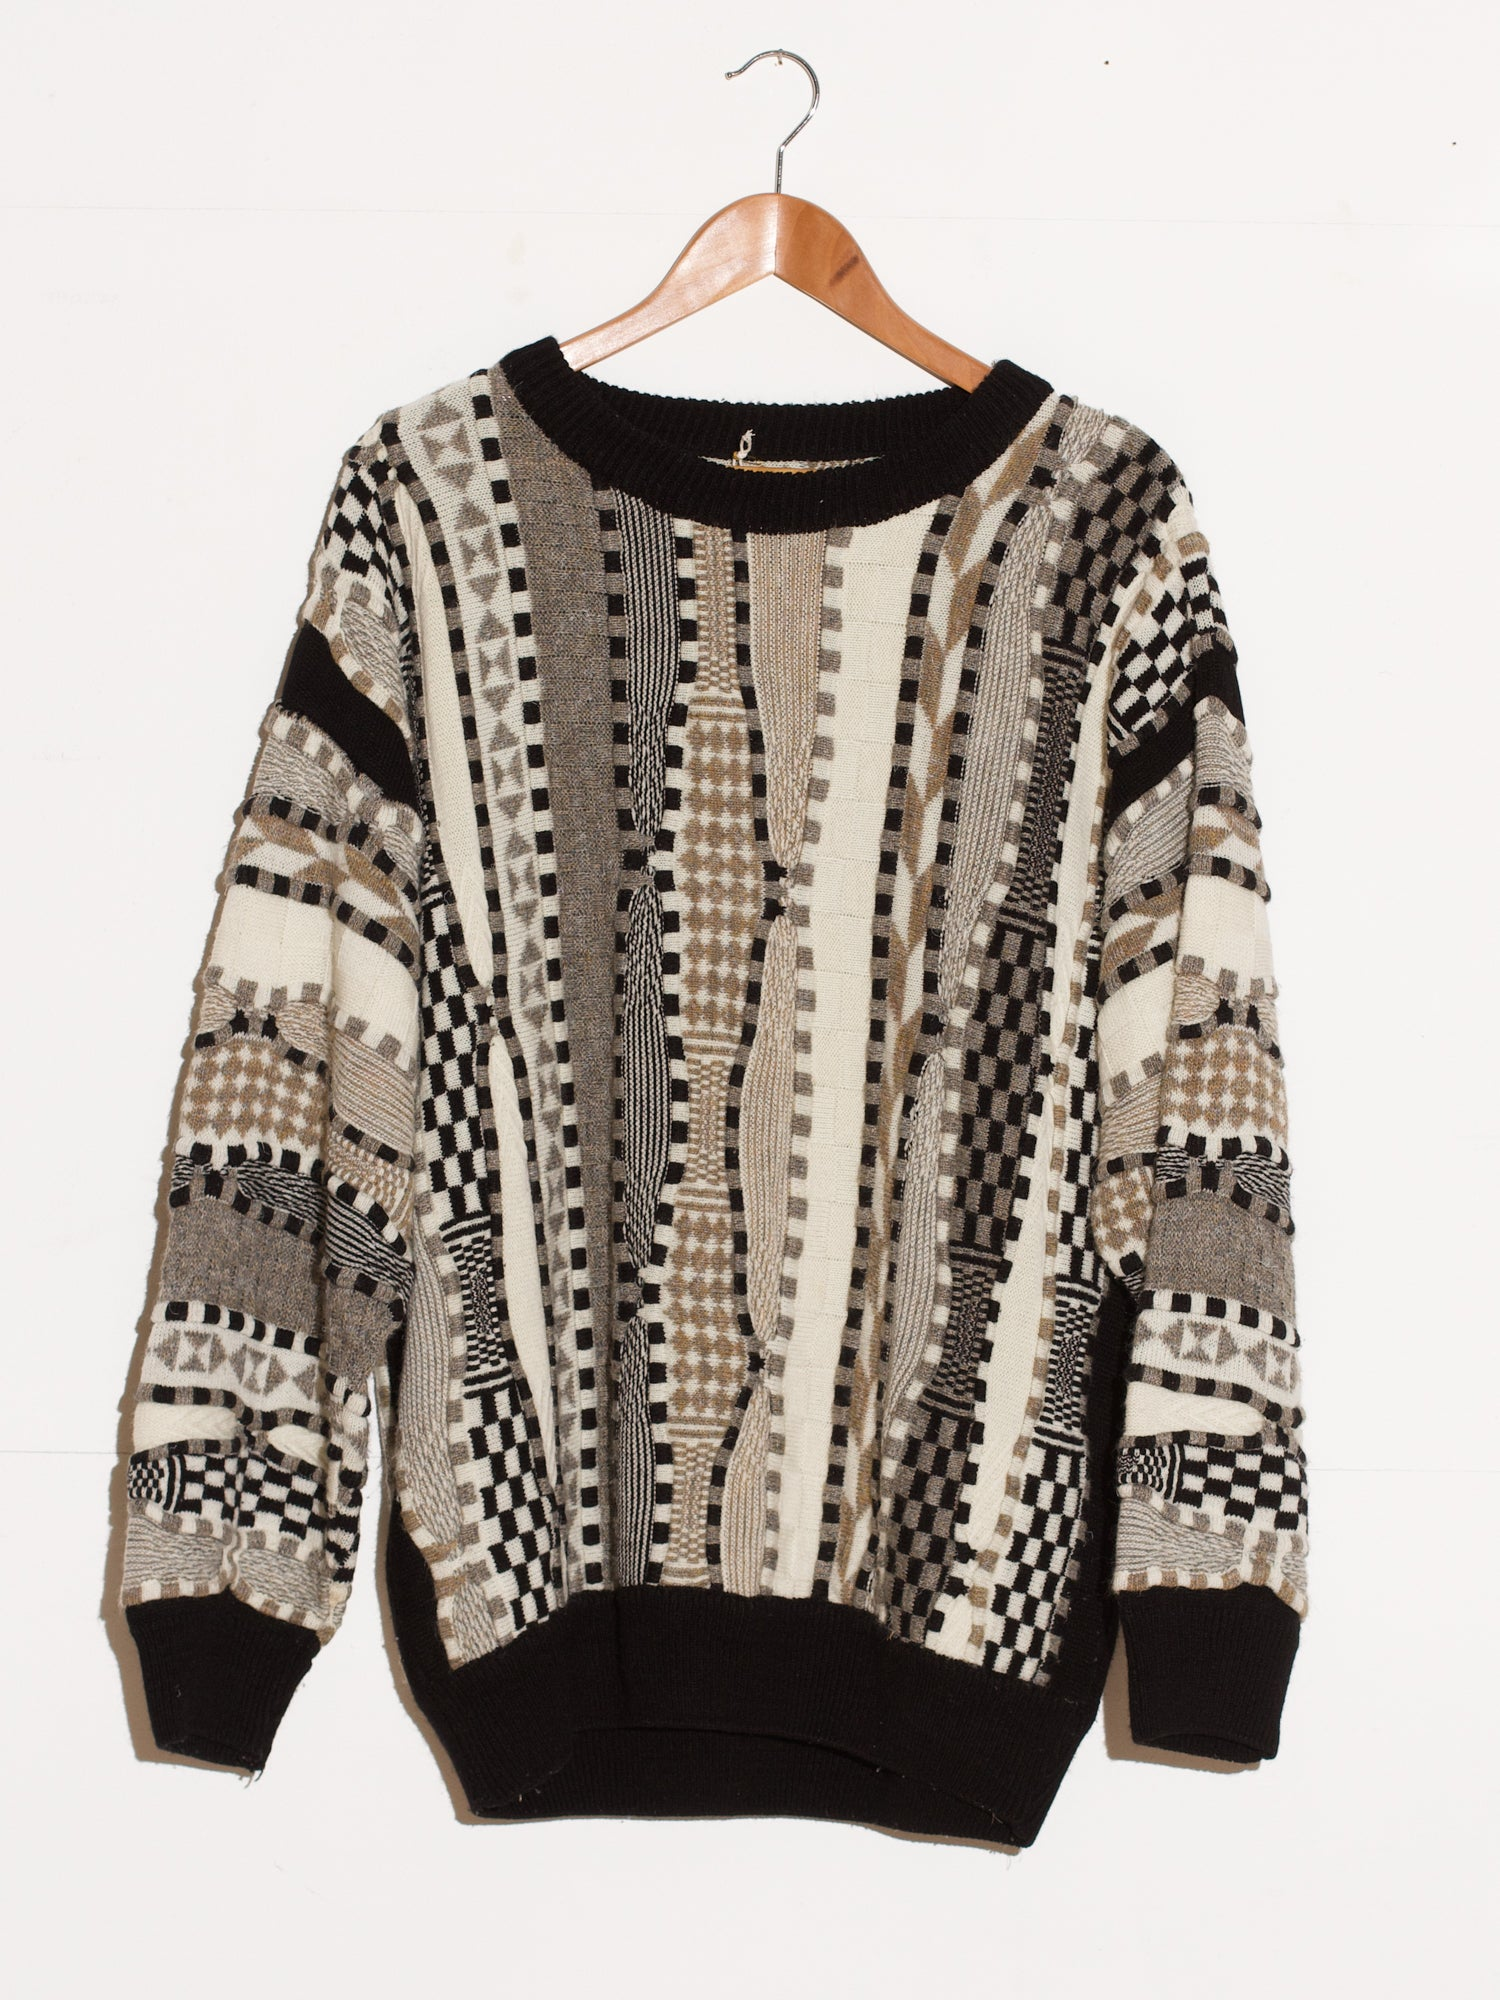 COOGI STYLE KNIT SWEATER